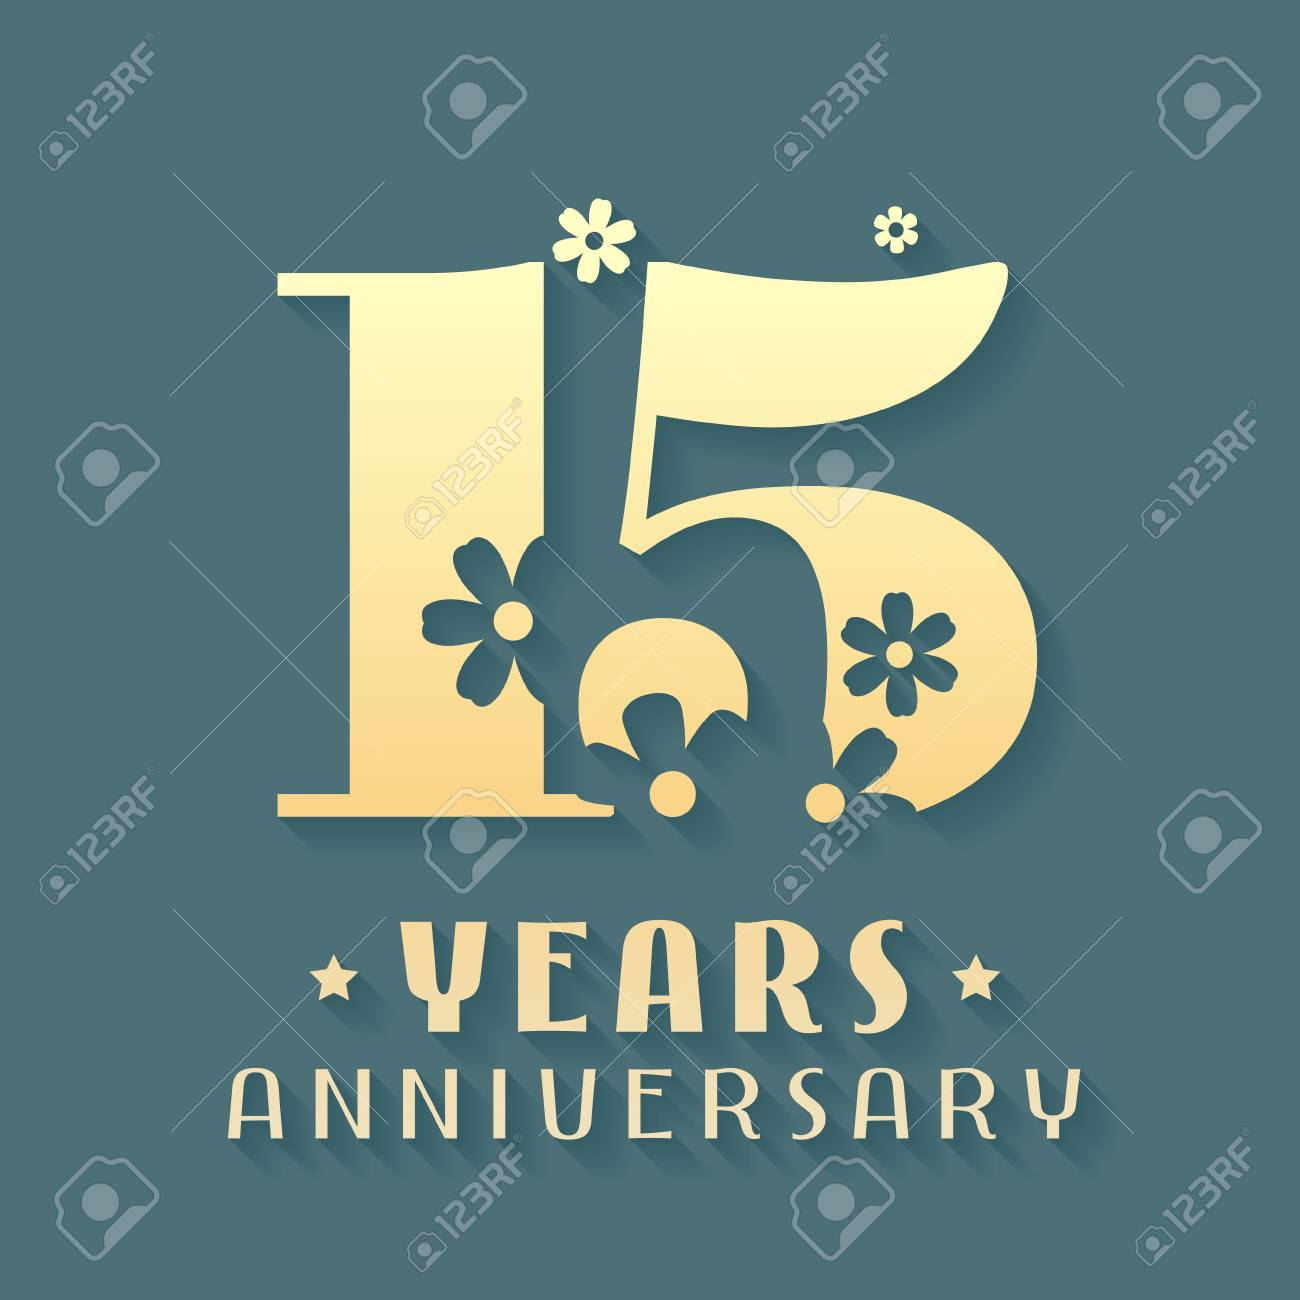 15 Years Anniversary Icon Symbol Graphic Design Element For